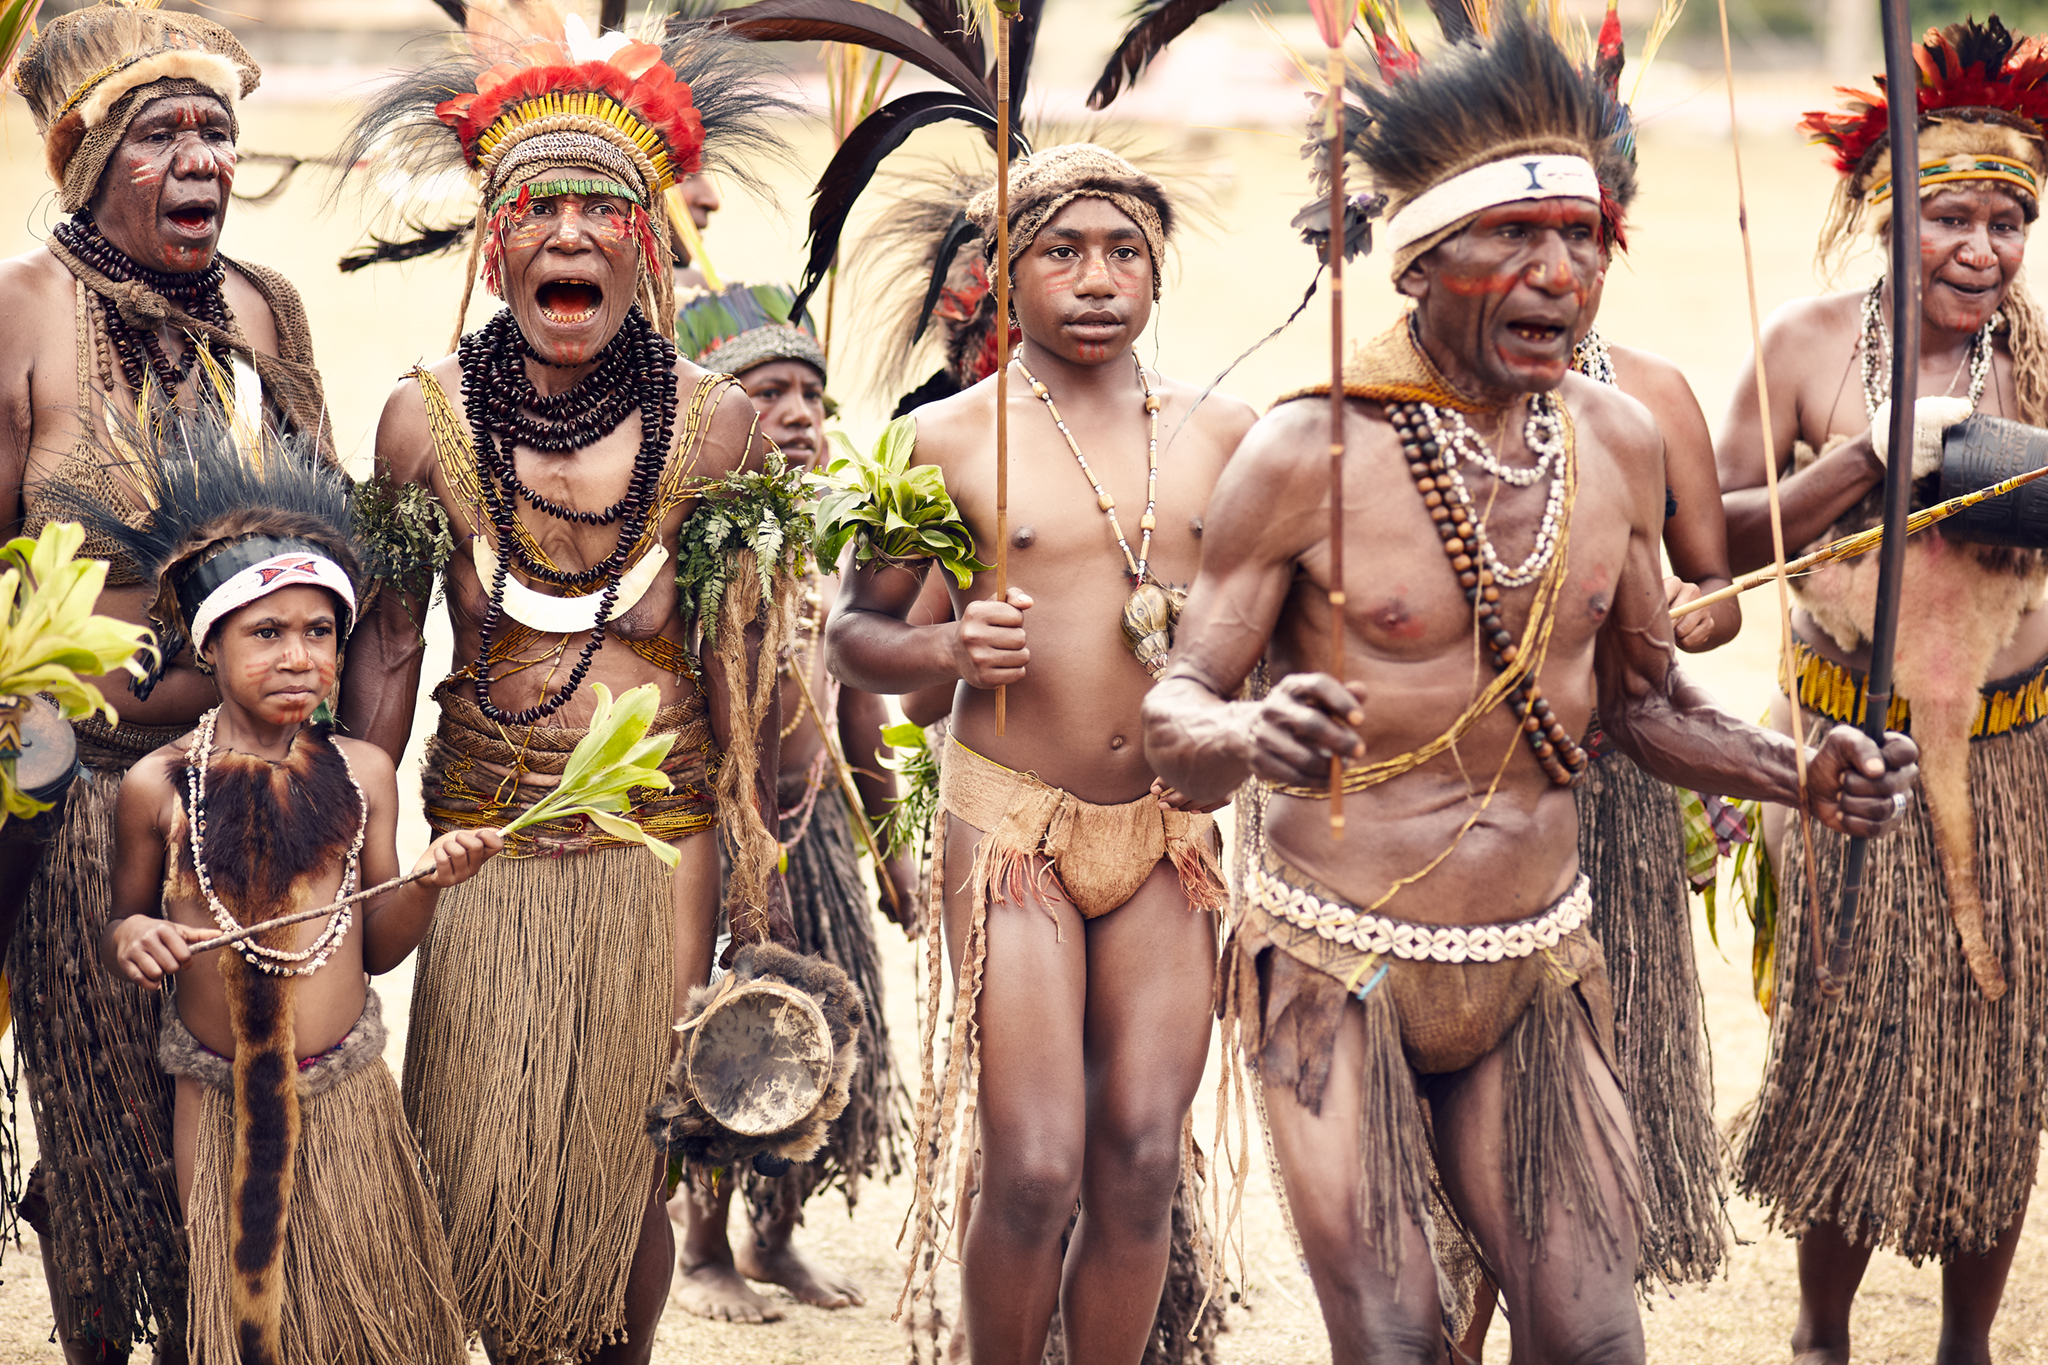 Wotose Tribe gather for group celebration, Papua New Guinea